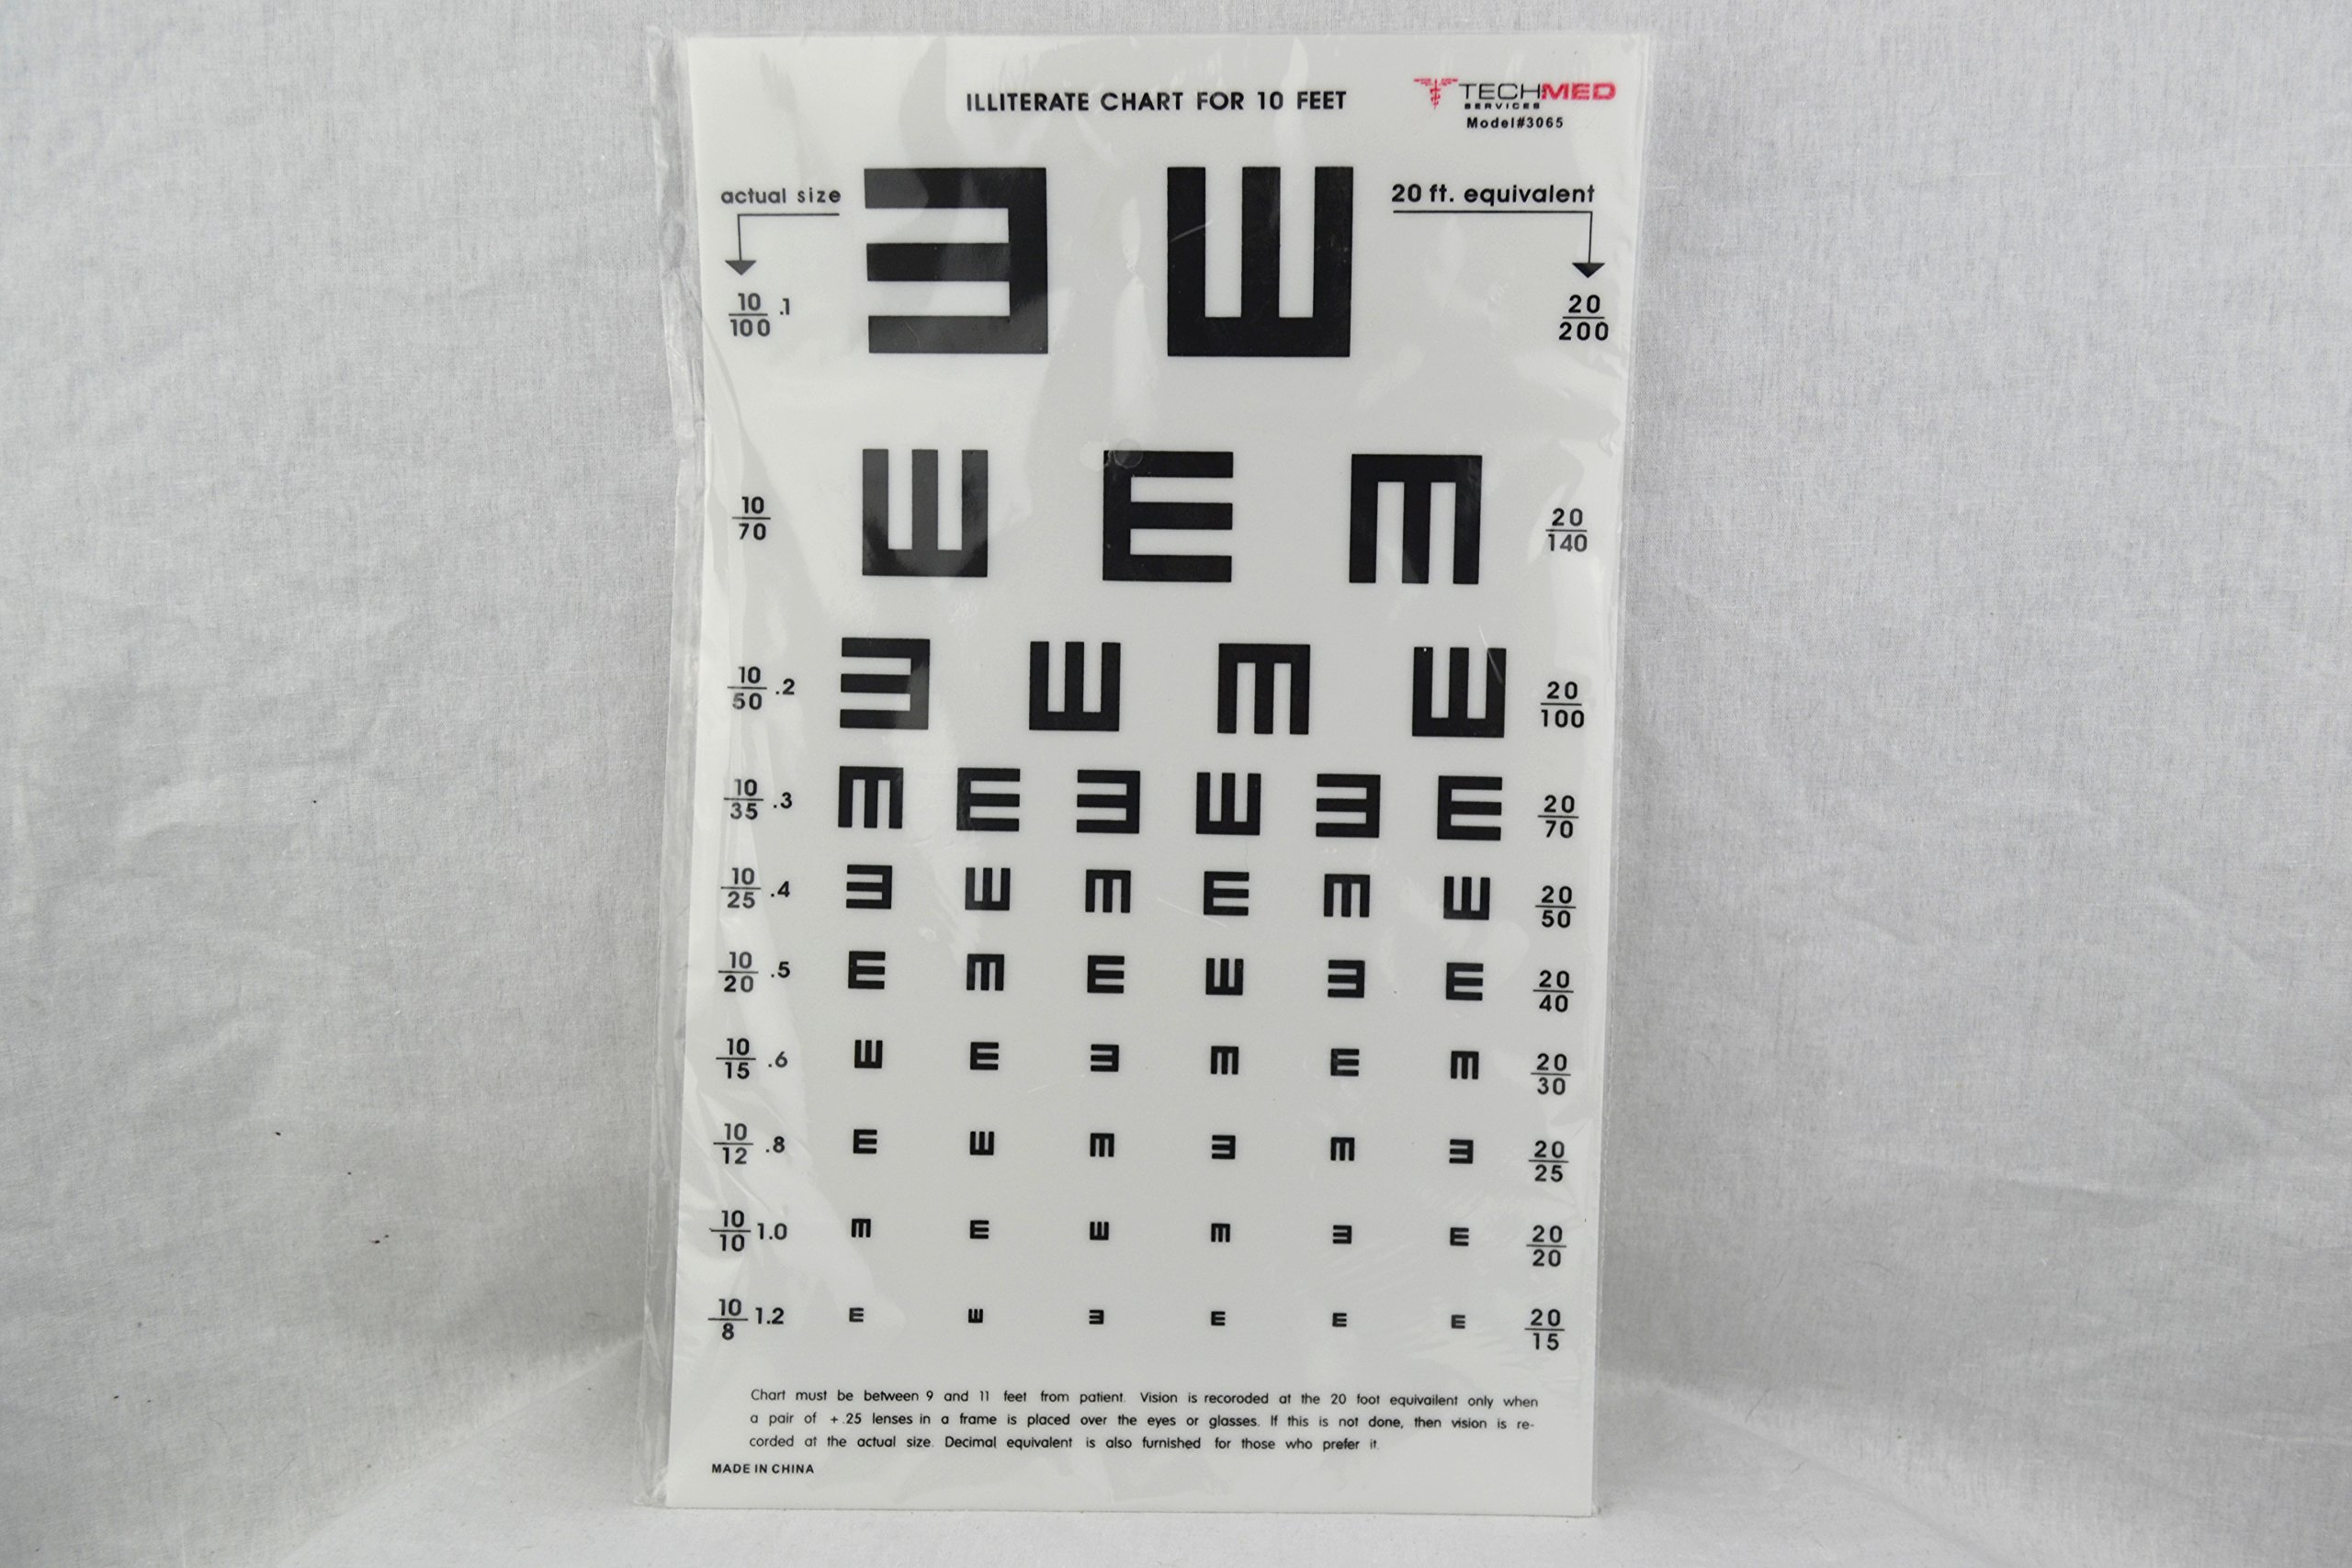 Illuminated Eye Test Cabinet Illiterate Chart 10 ft distance 14 x 9